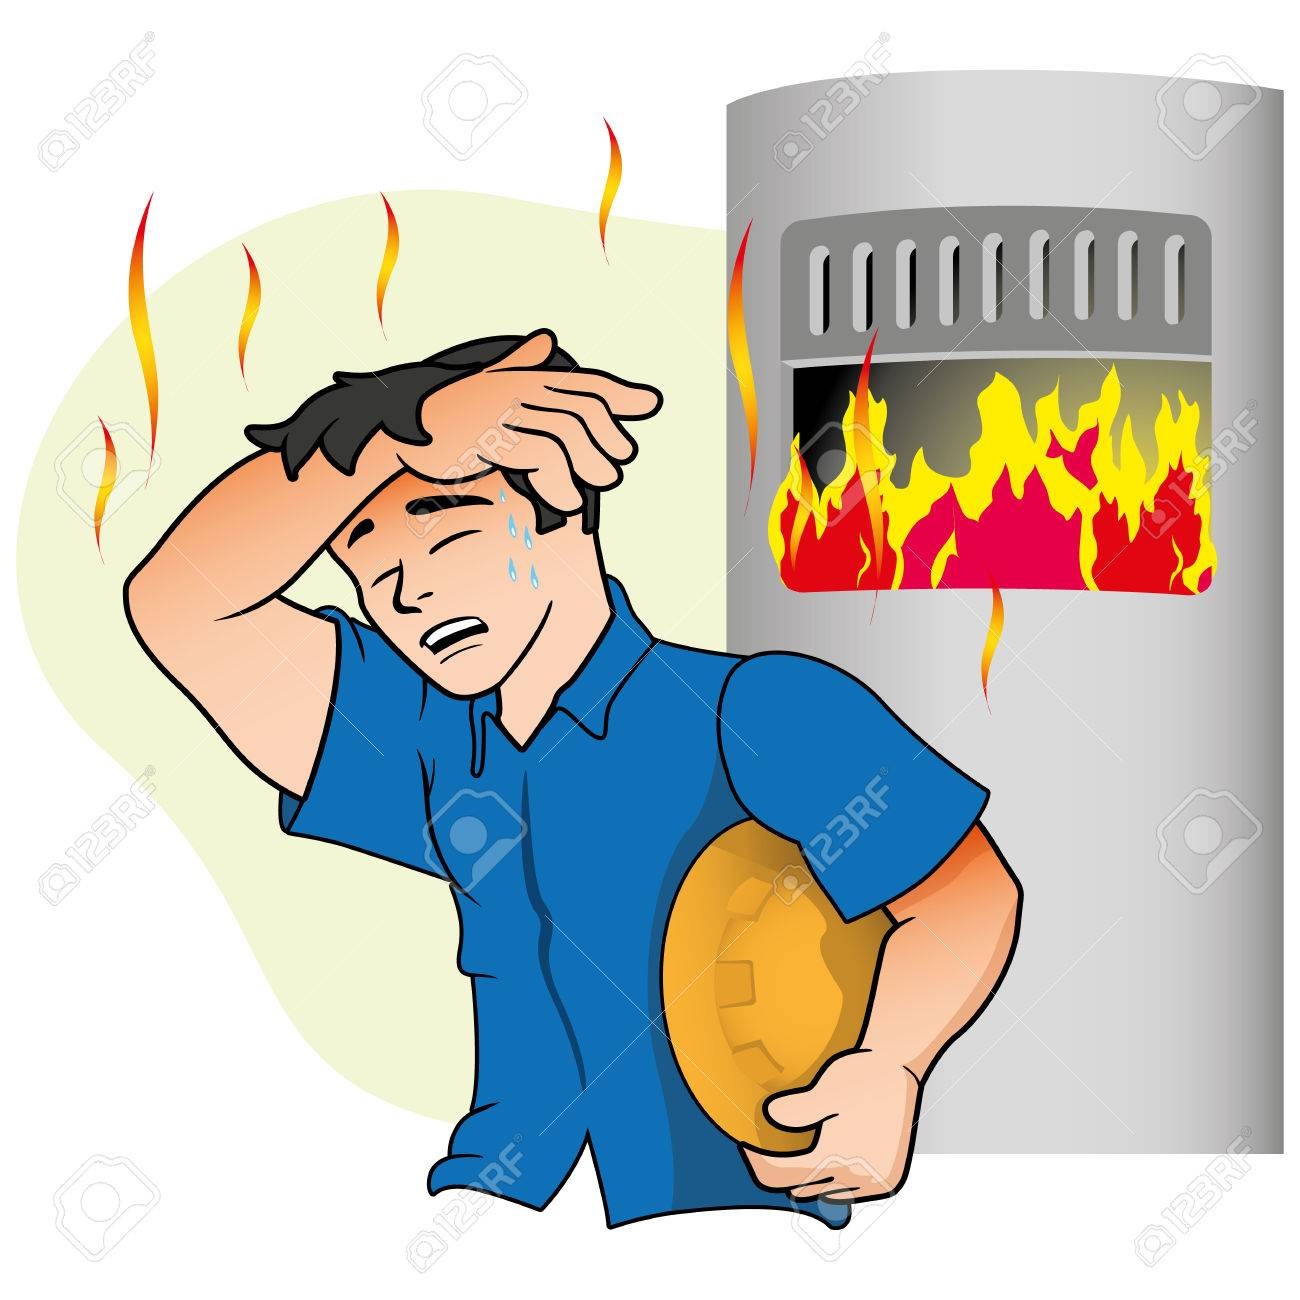 Caucasian Male Mascot Showing Symptoms Of Heat Near The Oven Royalty Free Cliparts Vectors And Stock Illustration Image 74114740 Keep in mind that social media outlets frequently update the design of their interfaces and image sizes are subject to change. 123rf